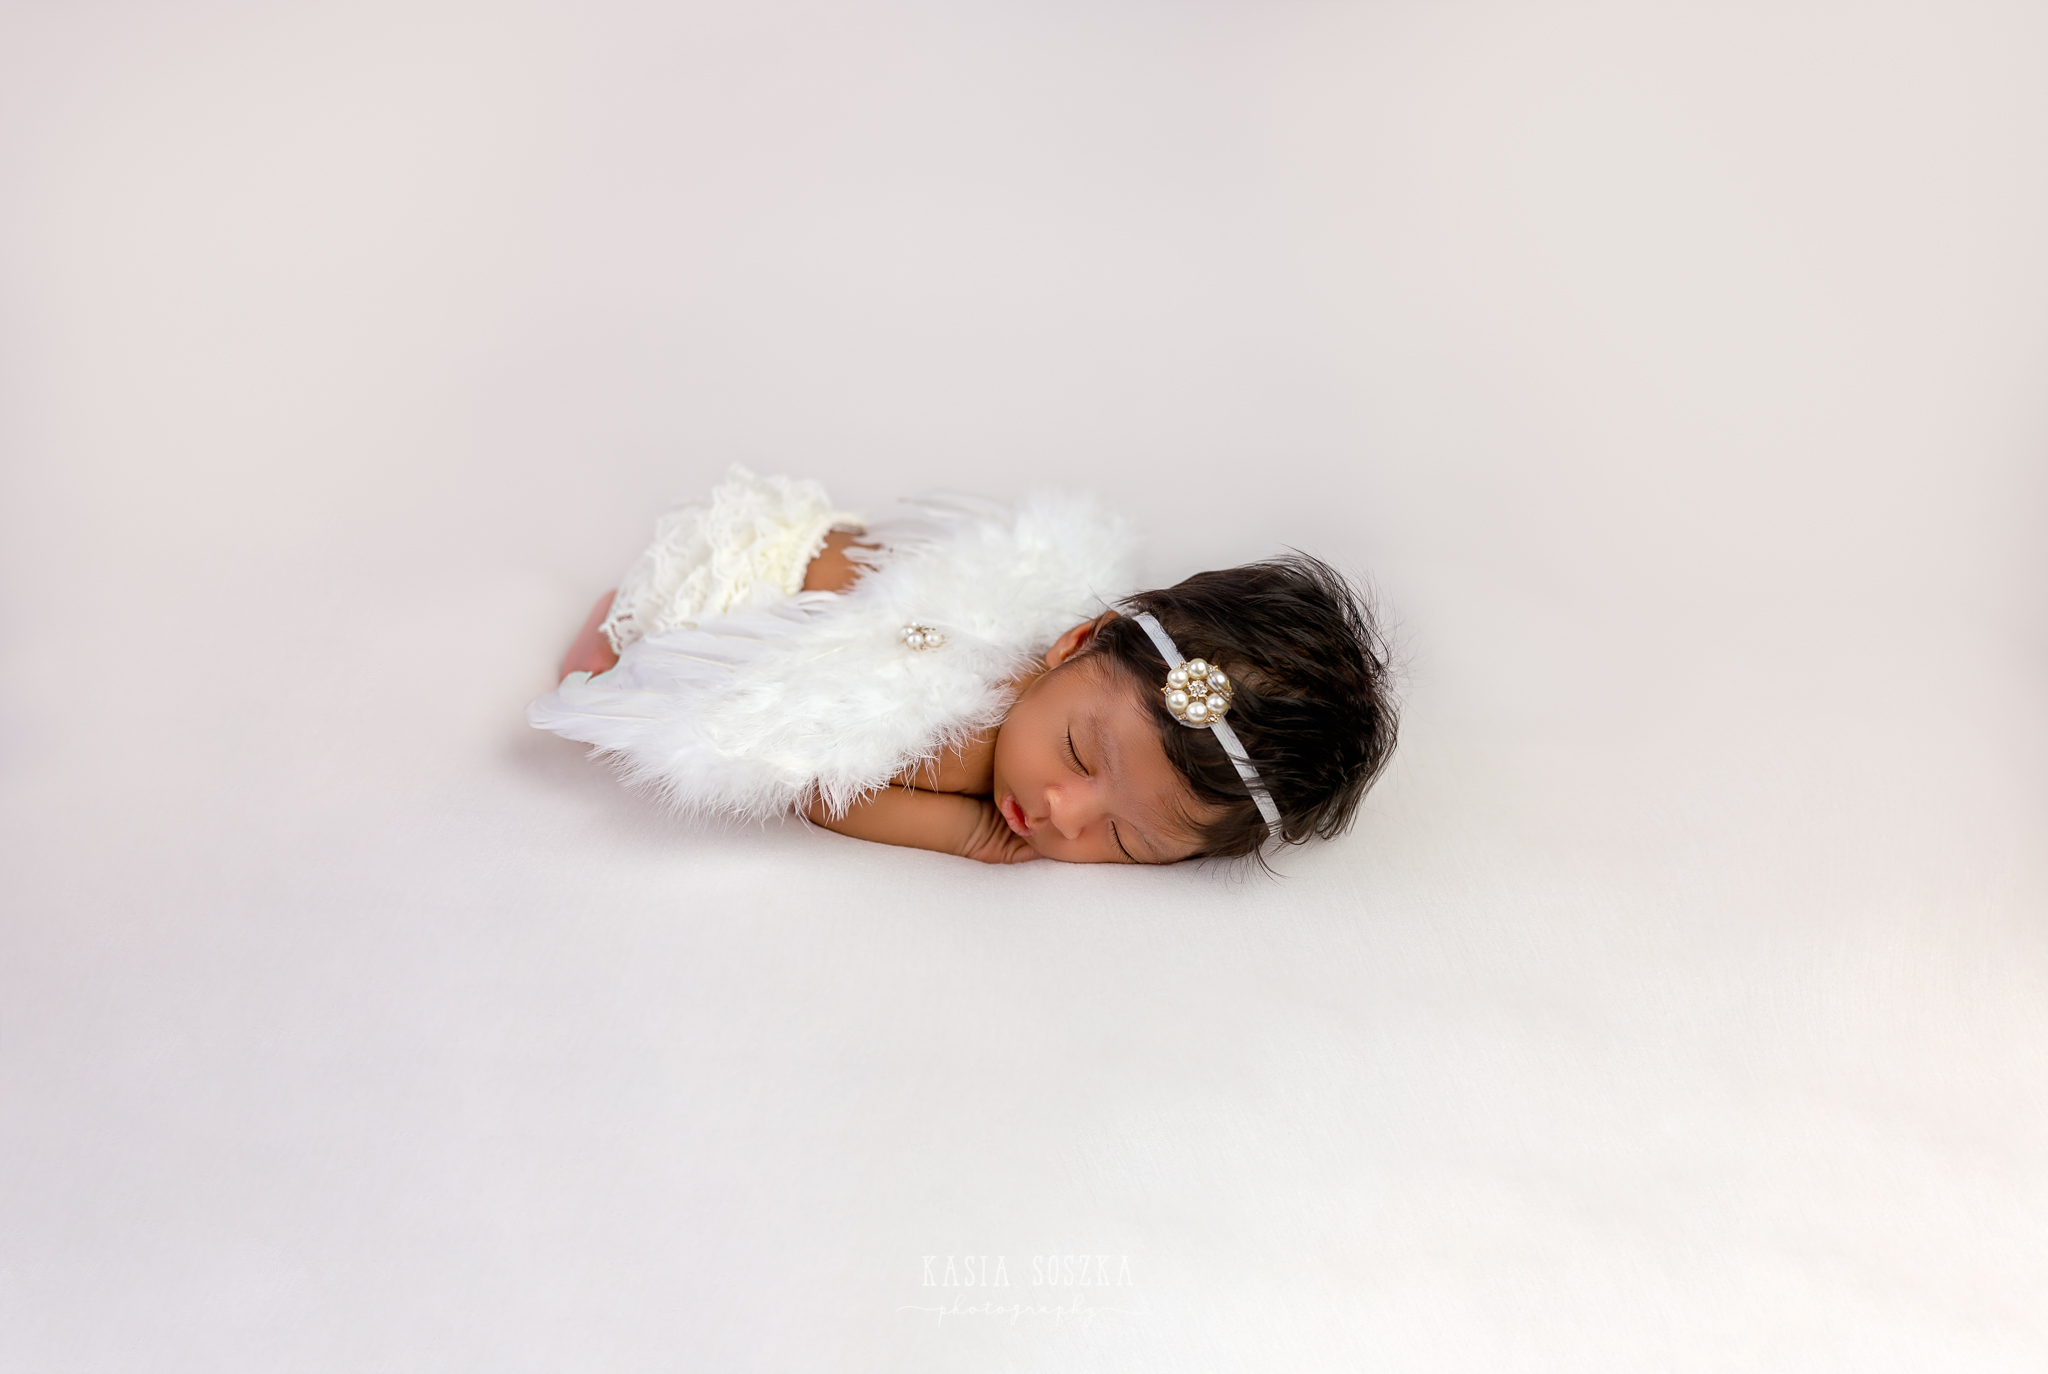 Newborn photography Leeds, Yorkshire, newborn session Leeds, York, Harrogate, Bradford: newborn baby girl with angel wings sleeping on a white blanket